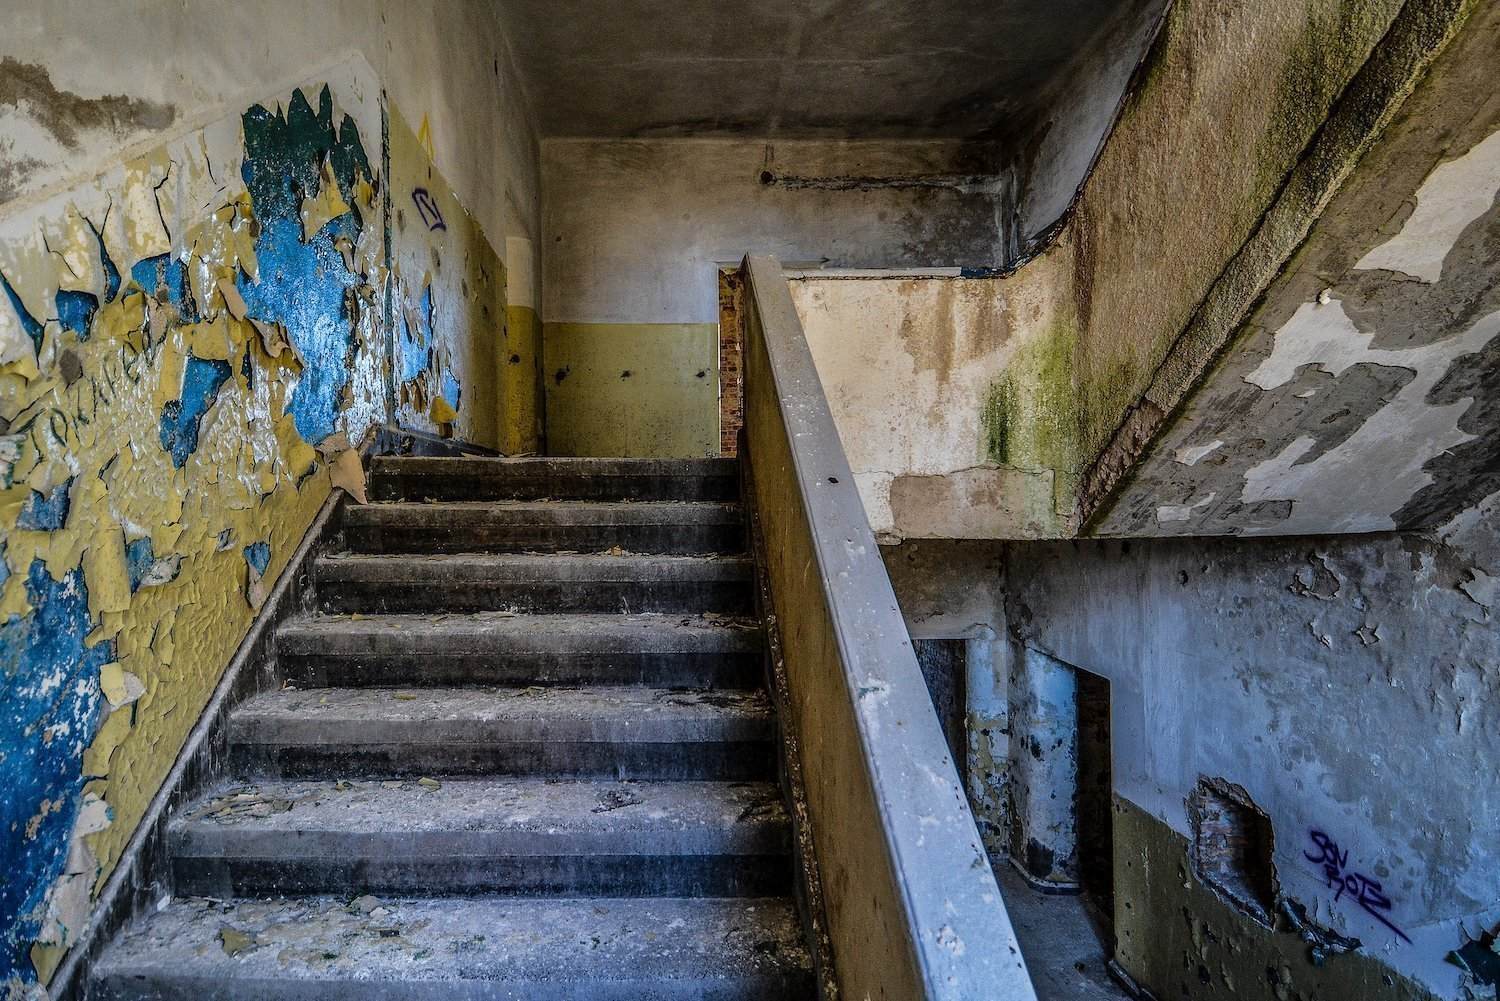 staircase treppe blue yellow paint nazi soviet military base abandoned urbex urban exploring loewen adler kaserne elstal wustermark roter stern kaserne germany lost places